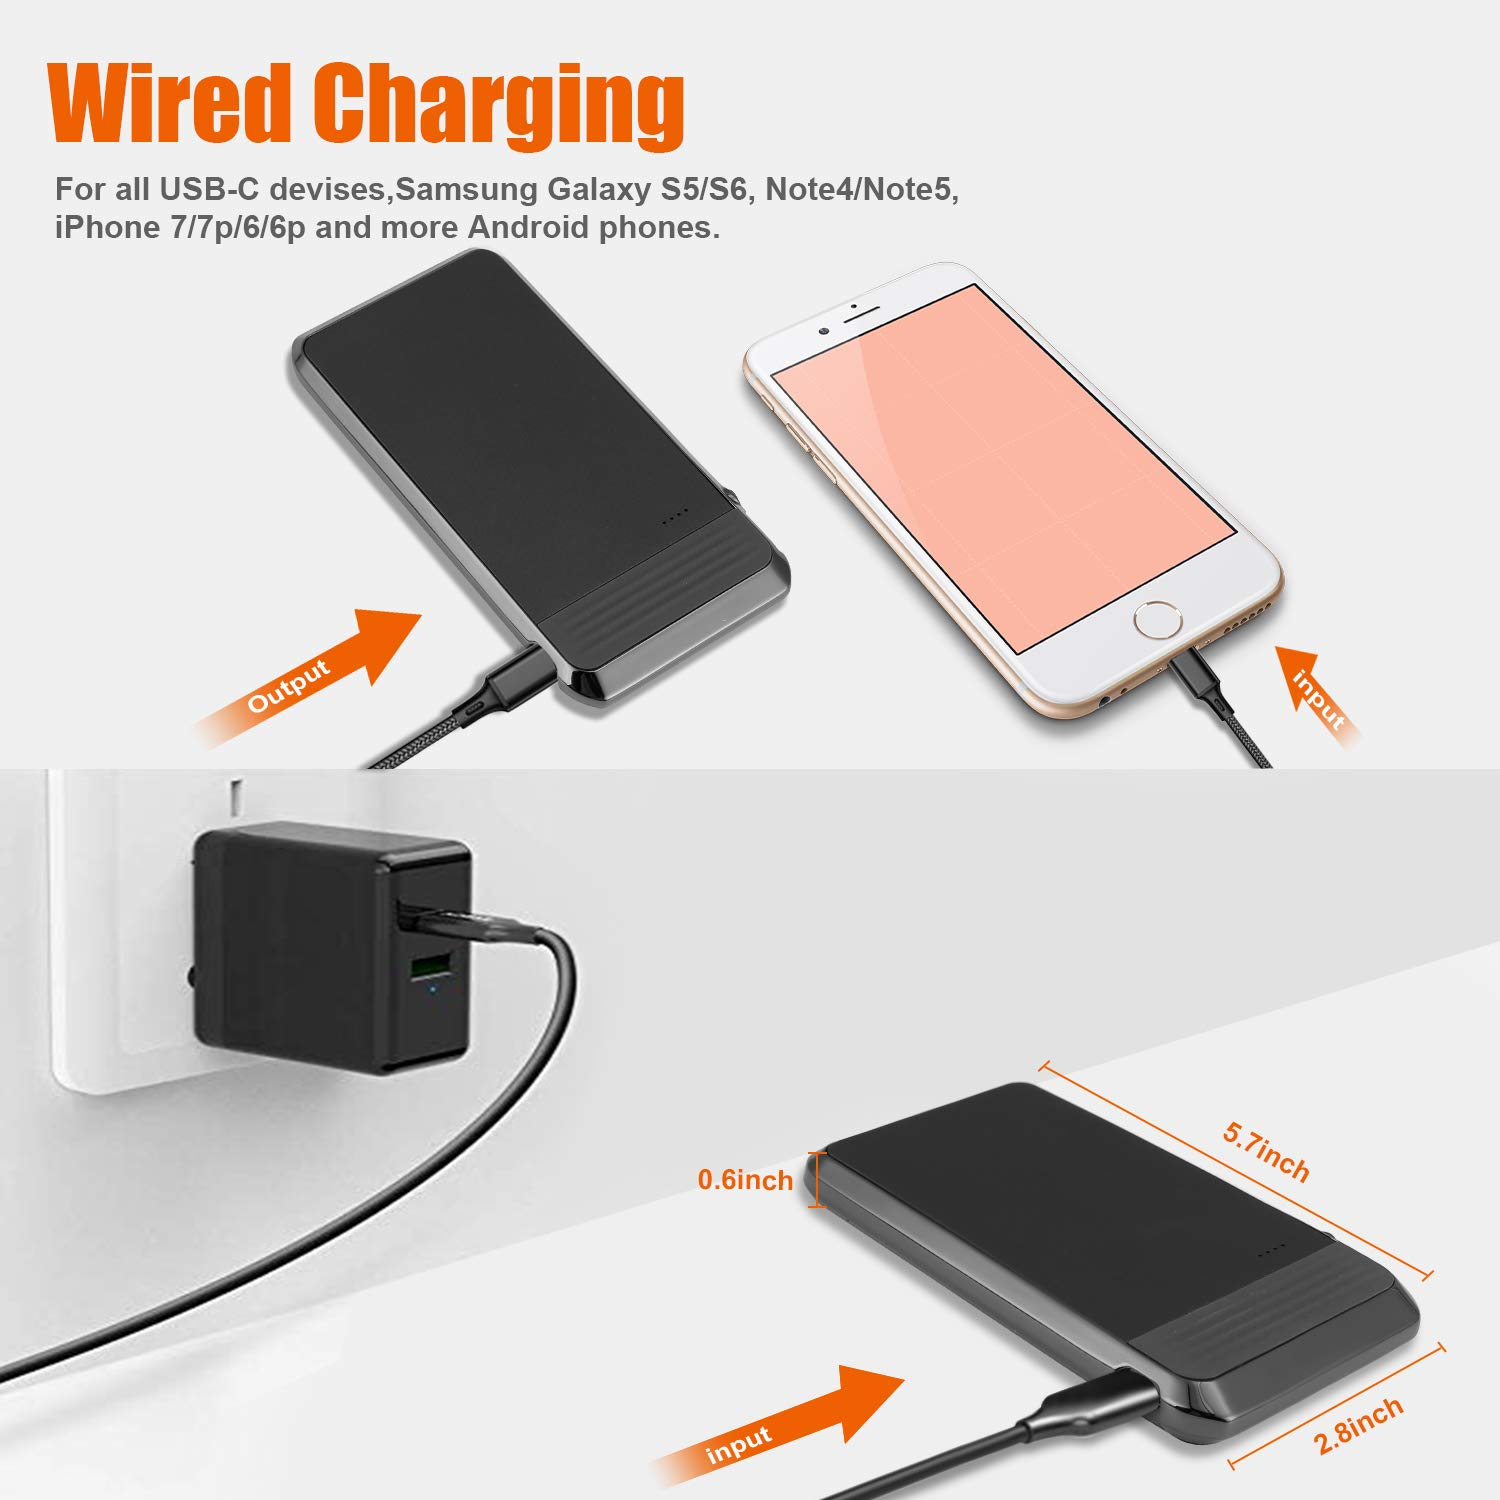 Wireless Portable Charger, AIRGINE QI Wireless Power Bank with Folding Stand for iPhone Xs/XR/X /8 /8p, ipad, Samsung S10 /S9 /Note9 and More (AC Adapter+USB Cable Included)